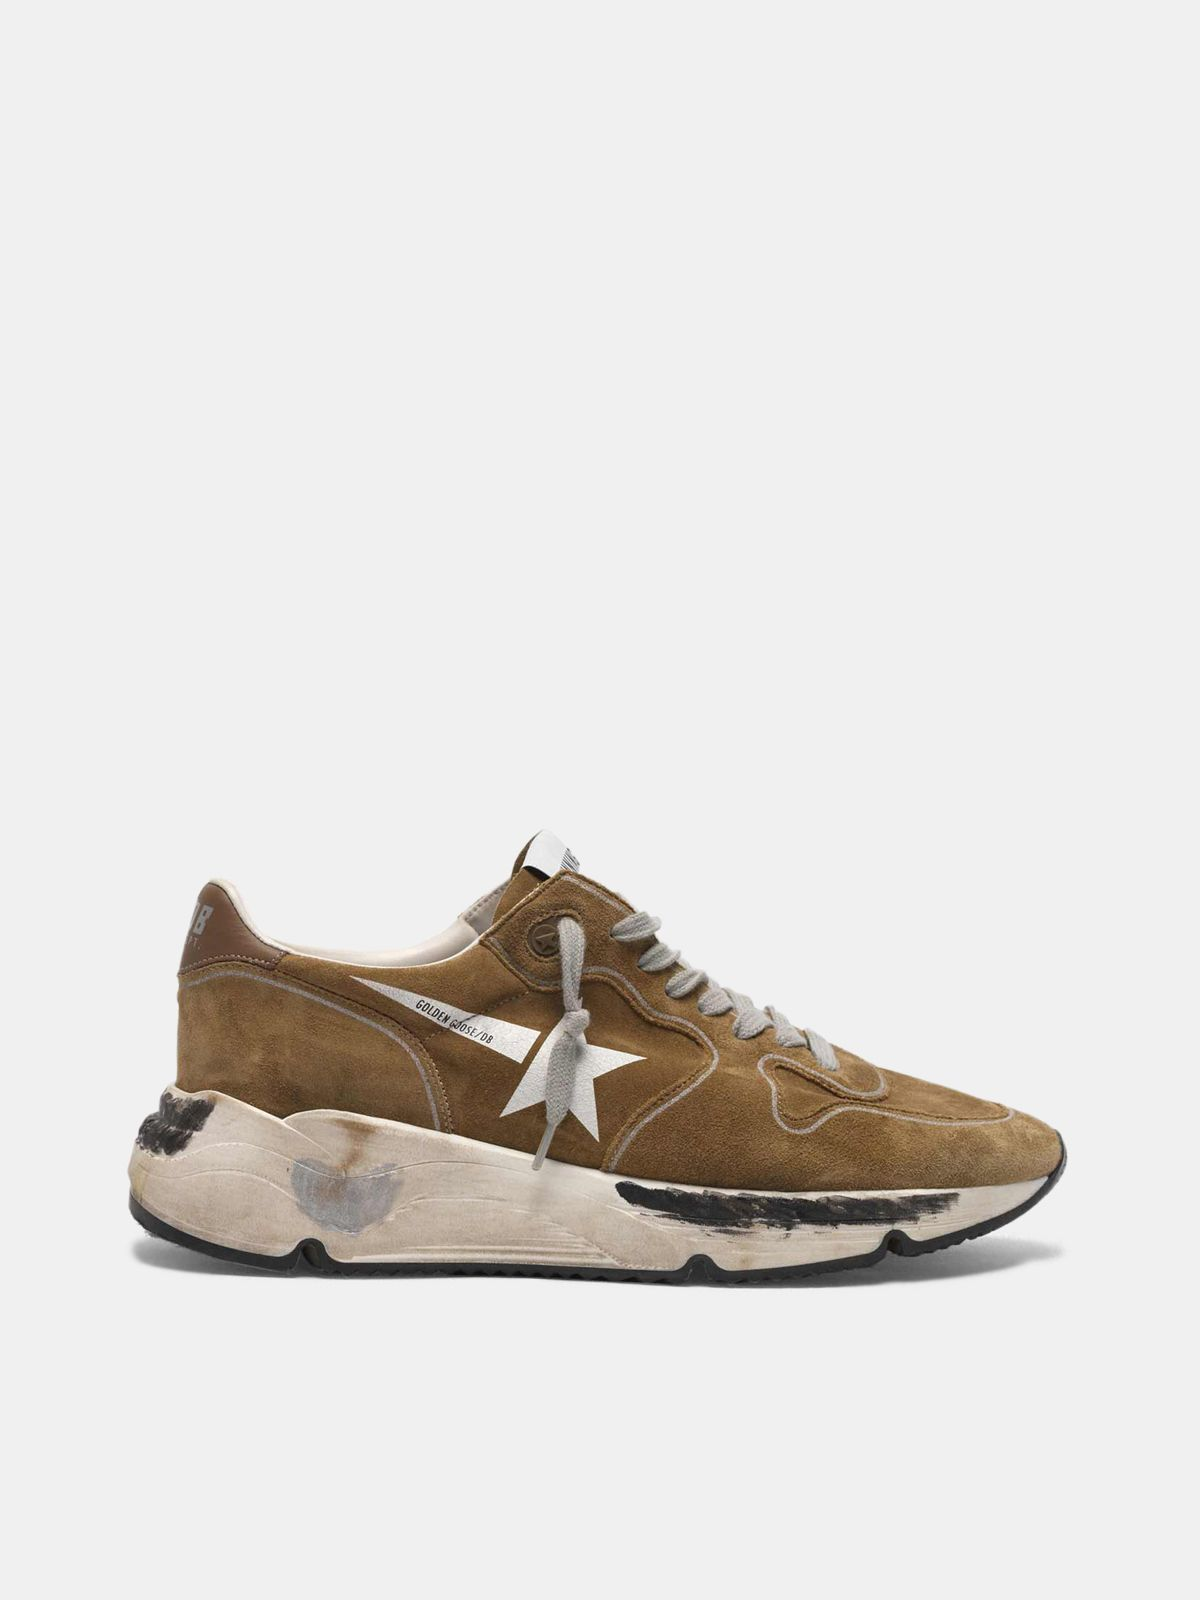 Golden Goose - Running Sole sneakers in suede with white star in